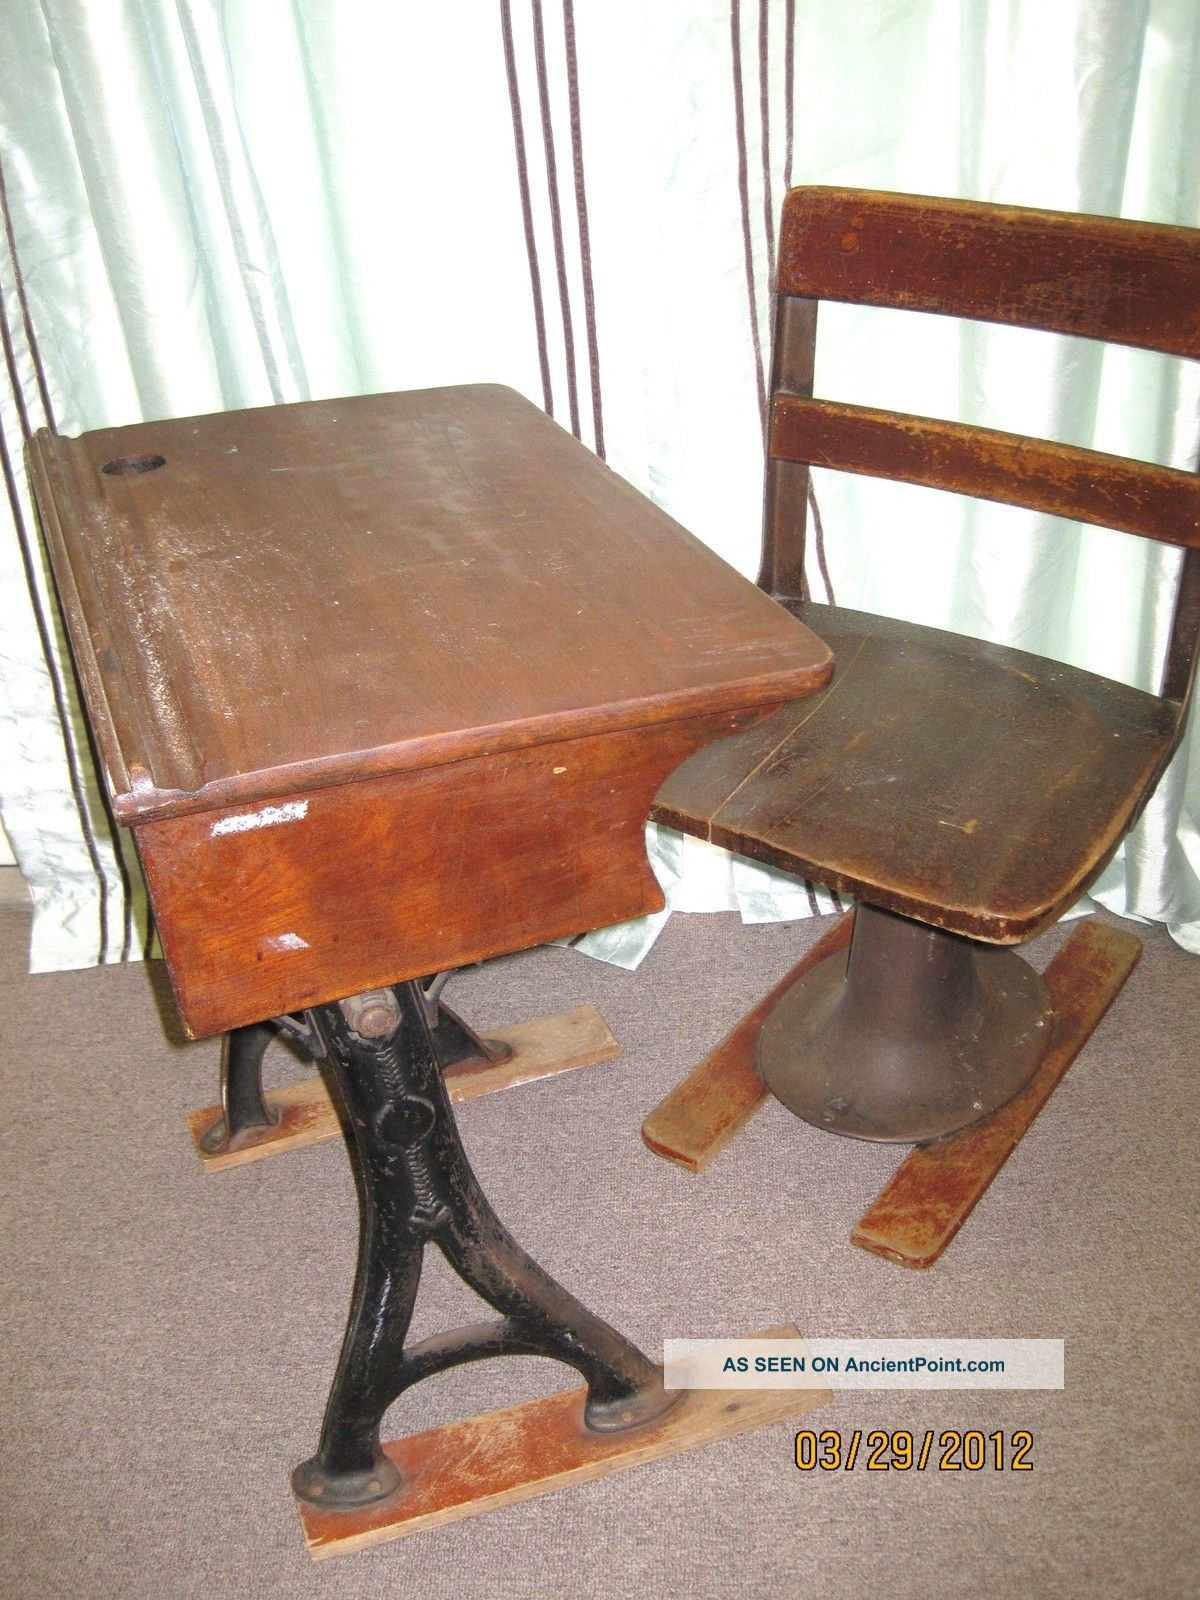 Antique Student W/ Patent Mark & Date Desk And Chair Unrestored Farm Fresh 1800-1899 photo